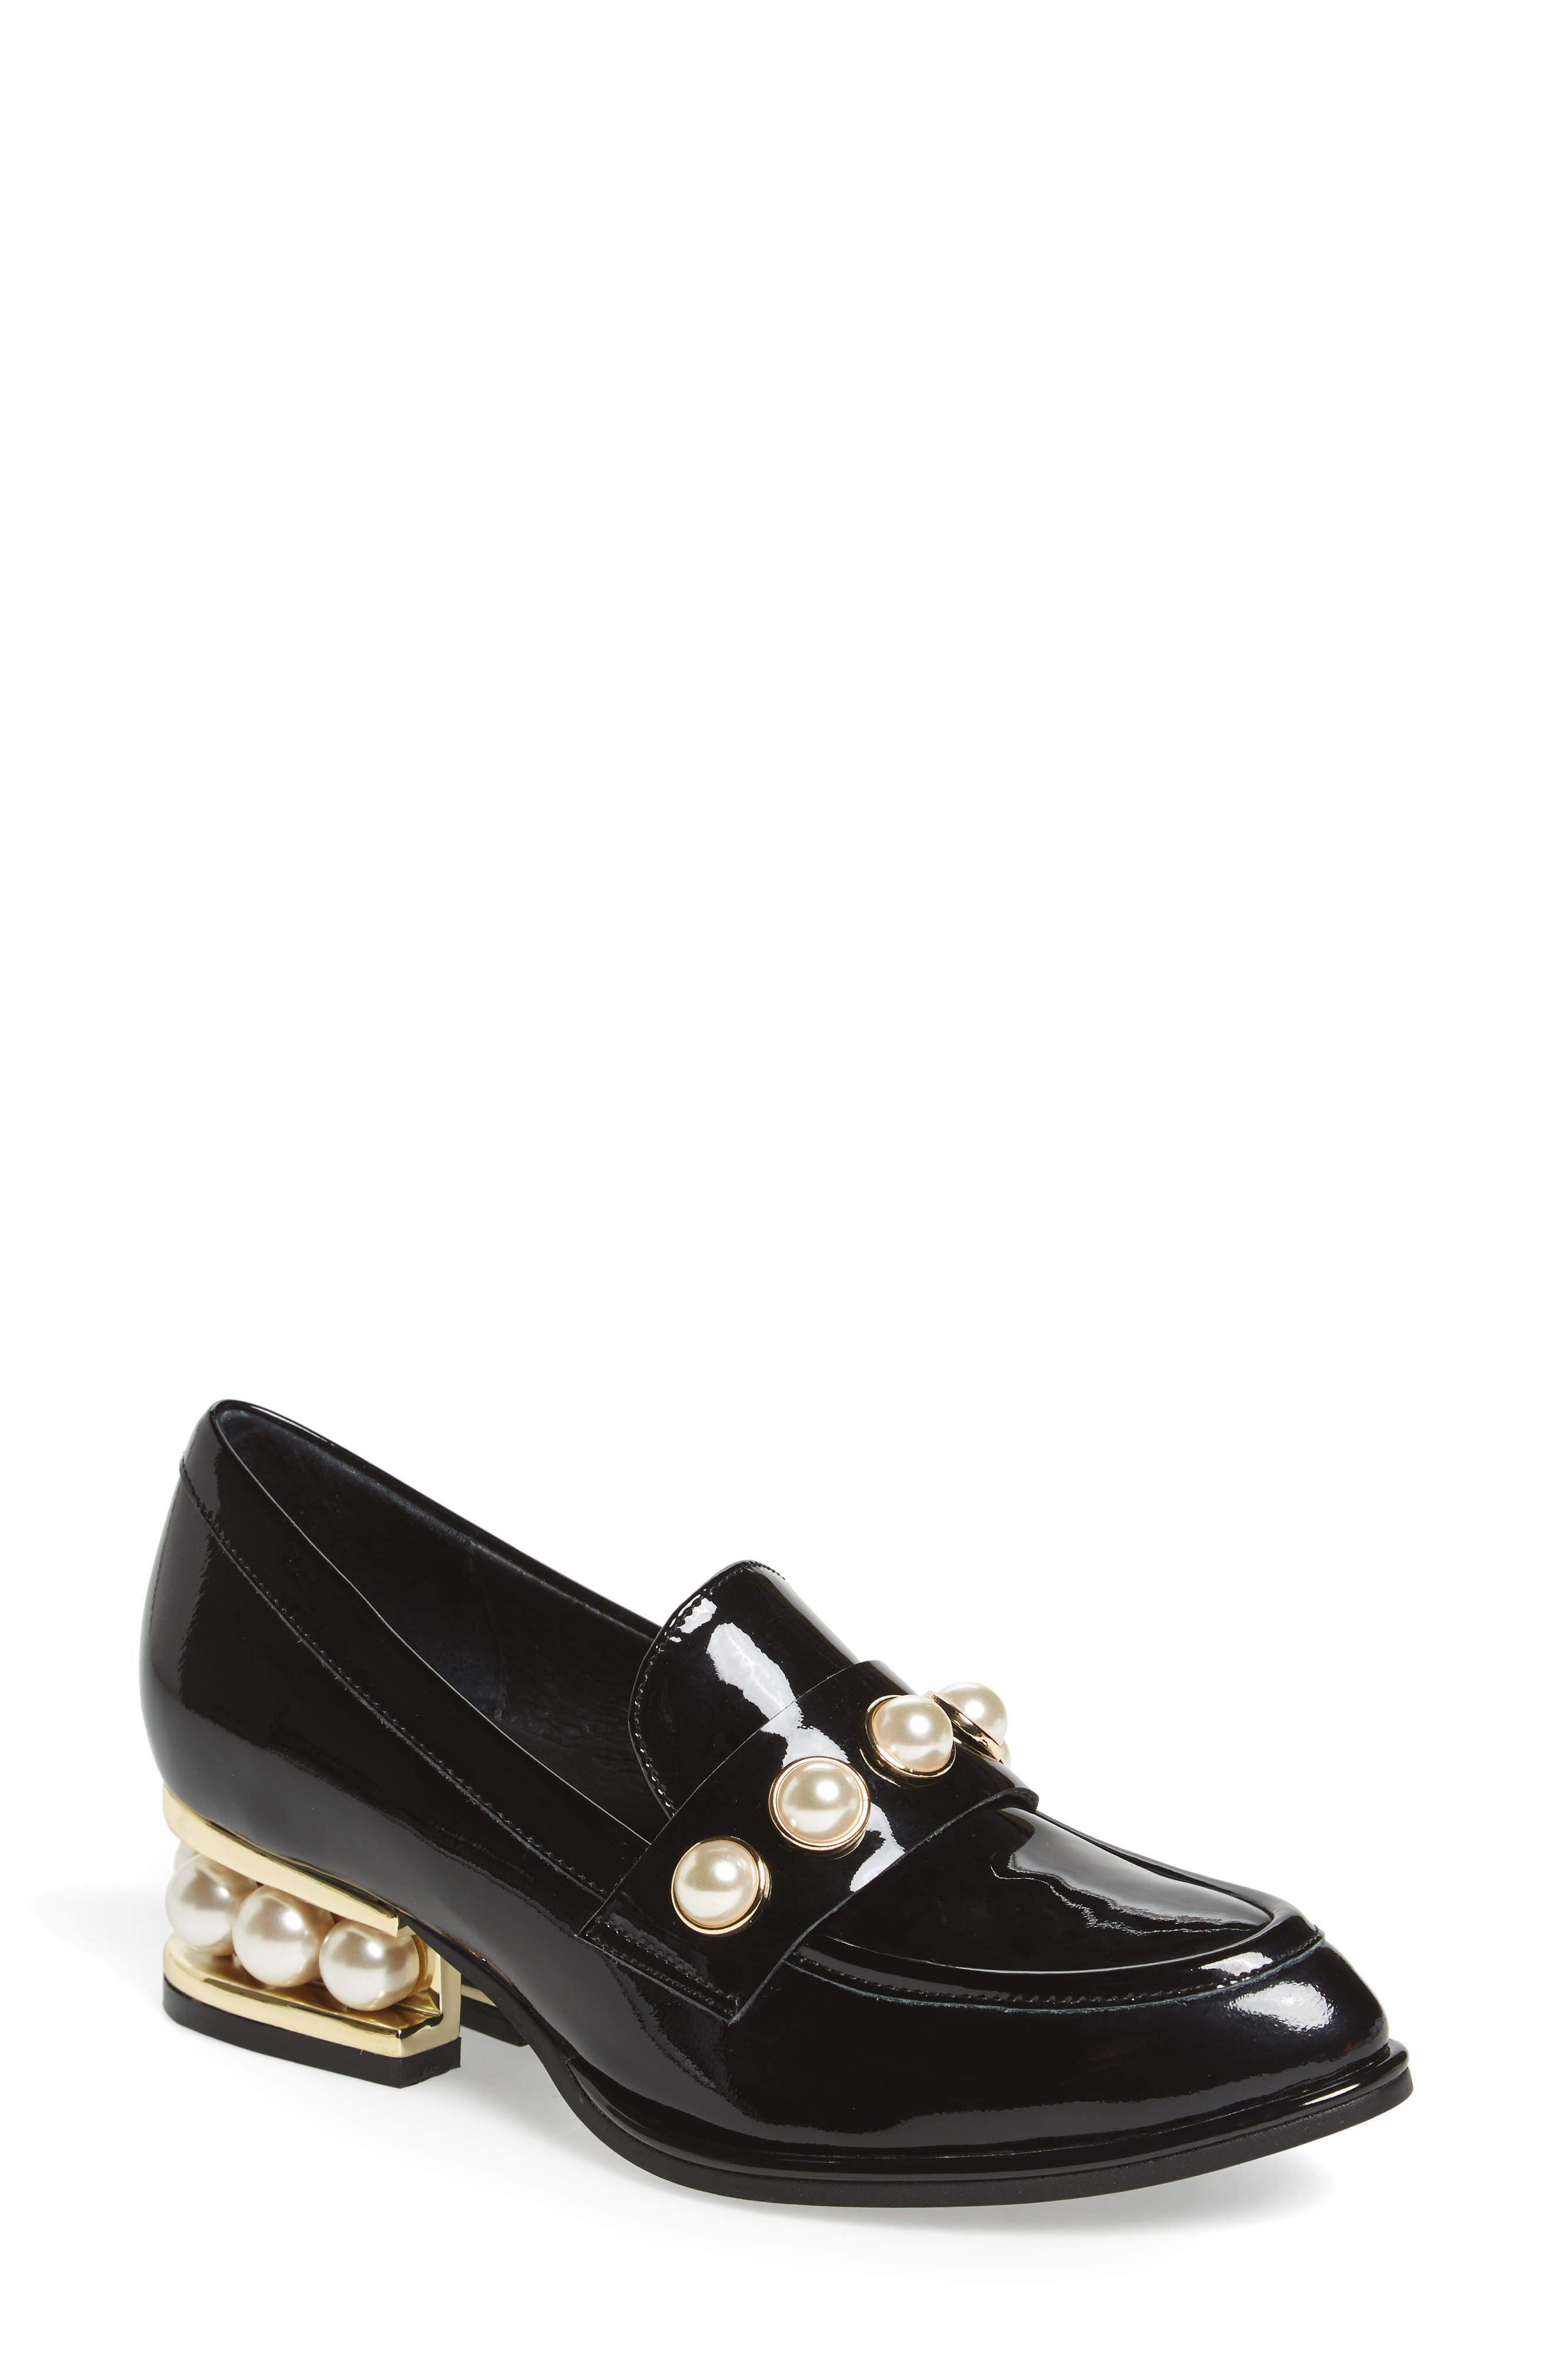 Main Image - Jeffrey Campbell Stathy Loafer (Women)